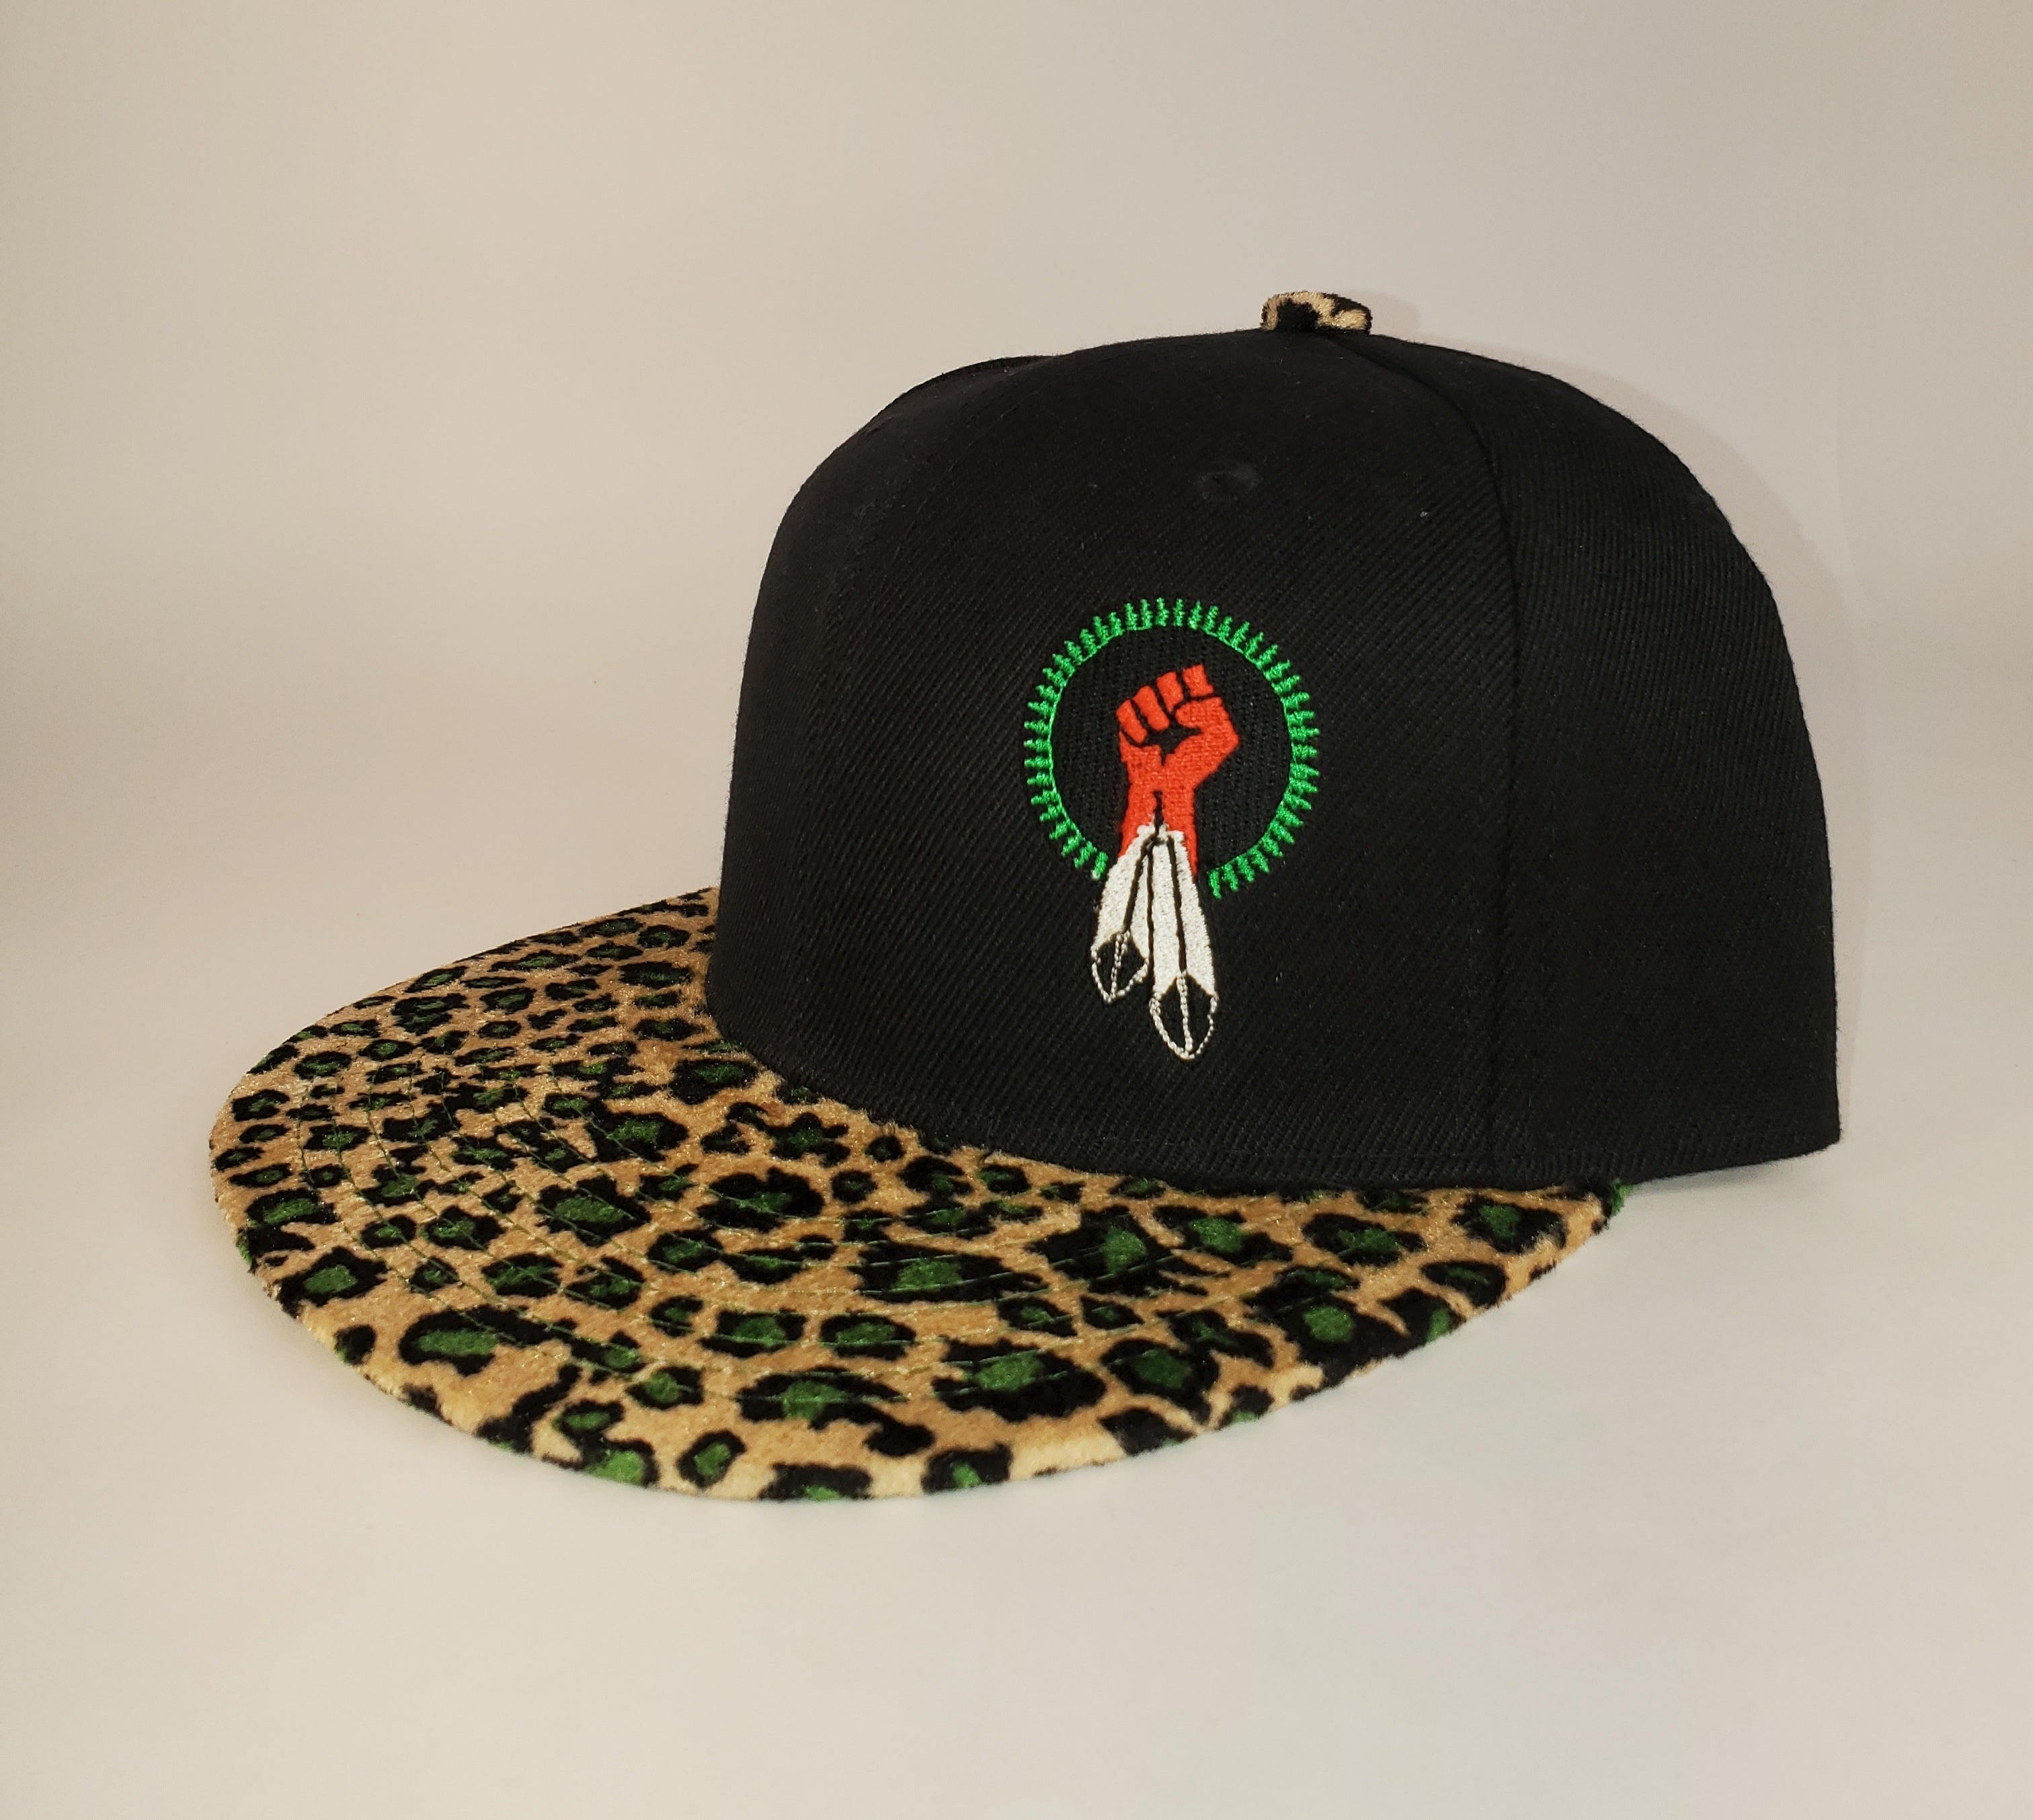 N8V MOVEMENT cap embroidered black leopard snapback